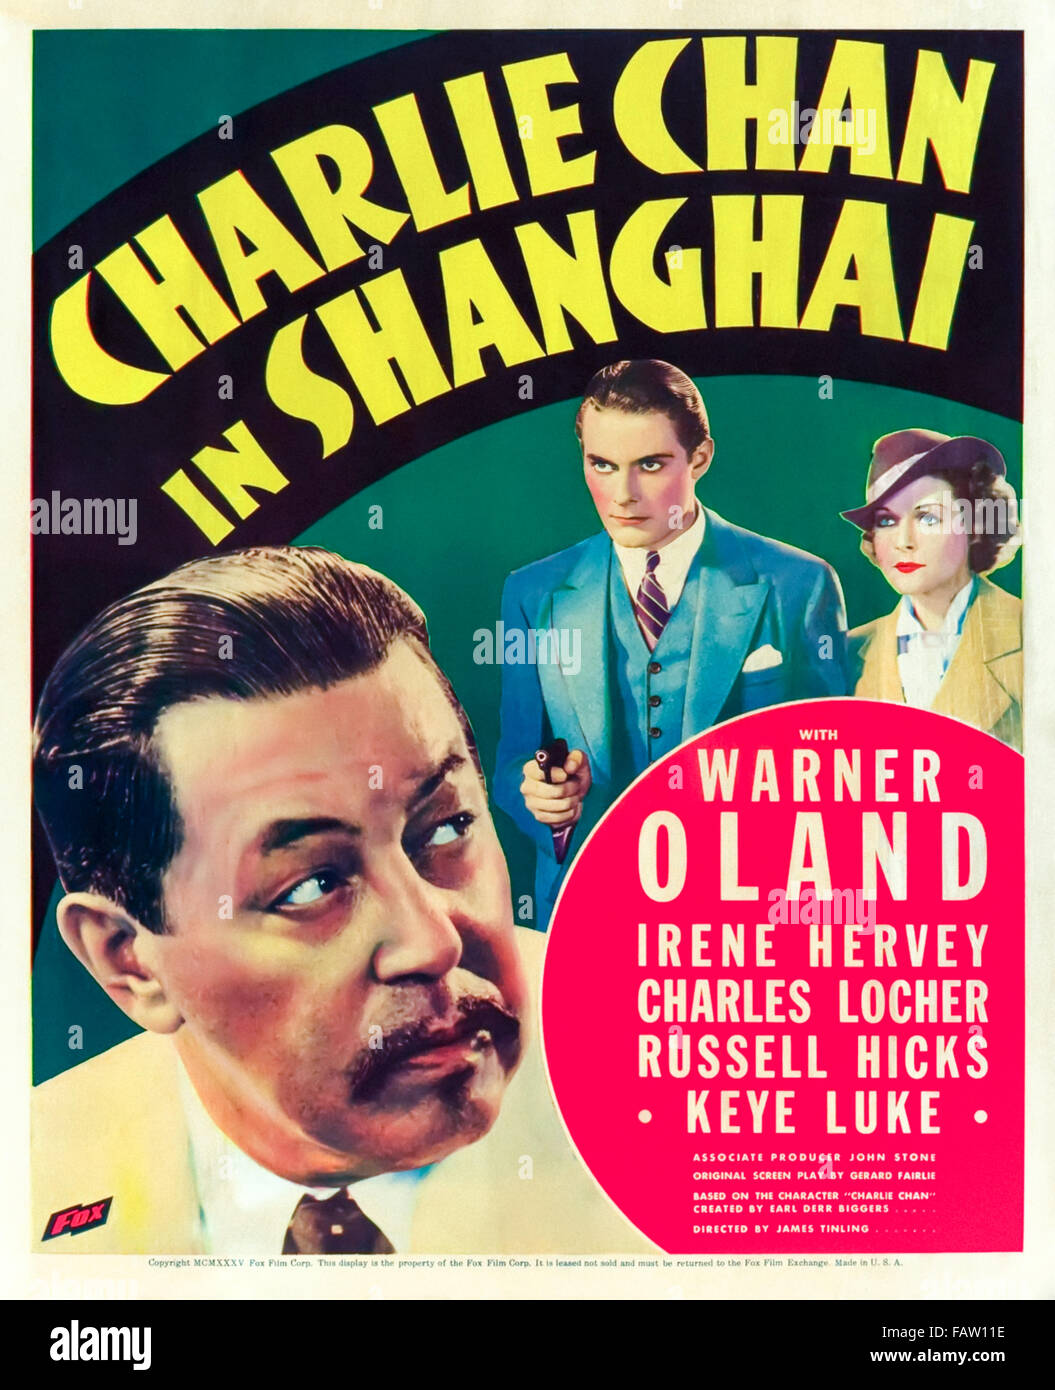 'Charlie Chan in Shanghai' 1935 poster. In this film directed by James Tinling, Charlie Chan (Warner Oland) - Stock Image